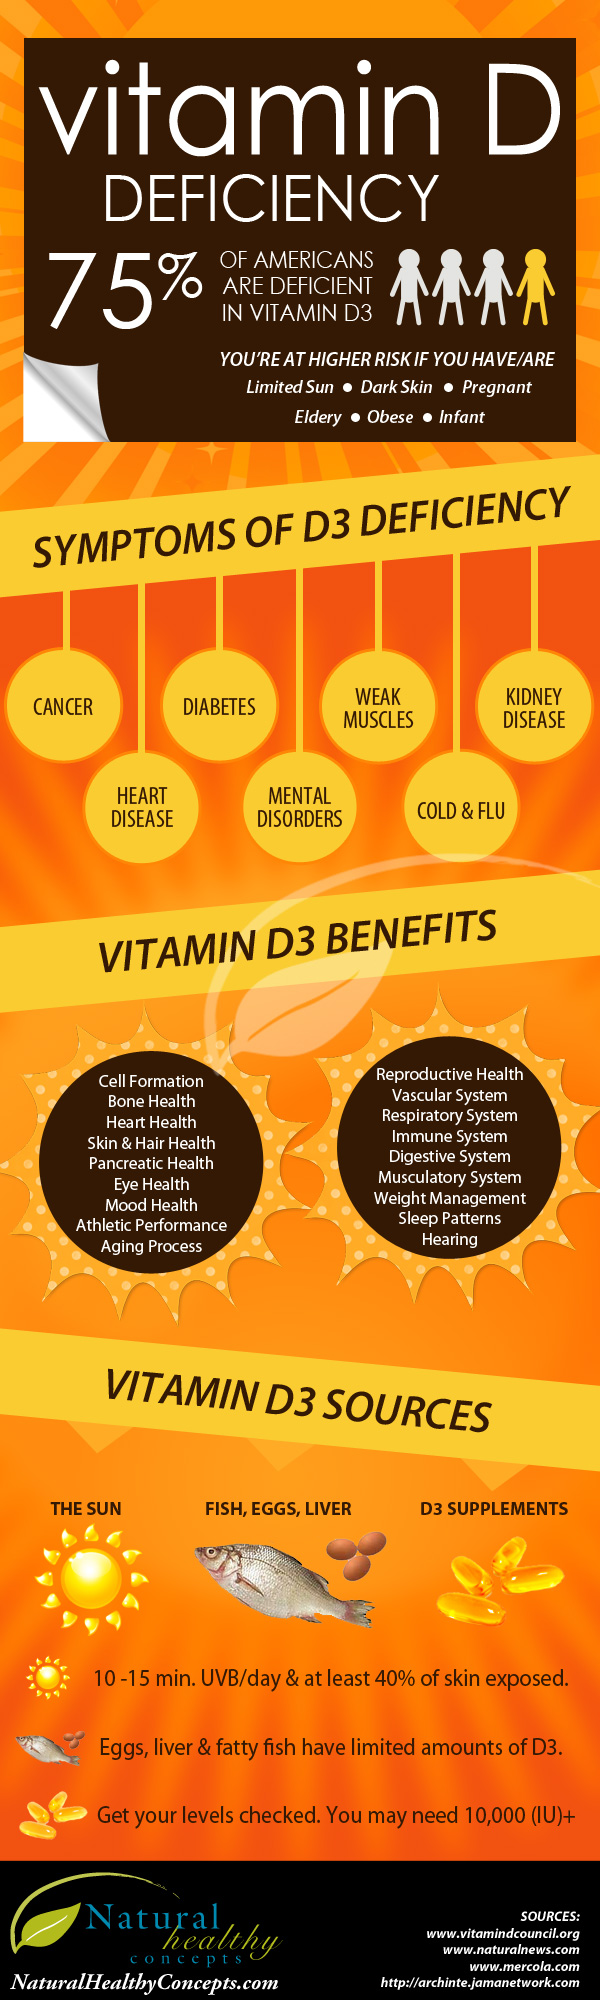 How To Fight With Vitamin D Deficiency Infographic